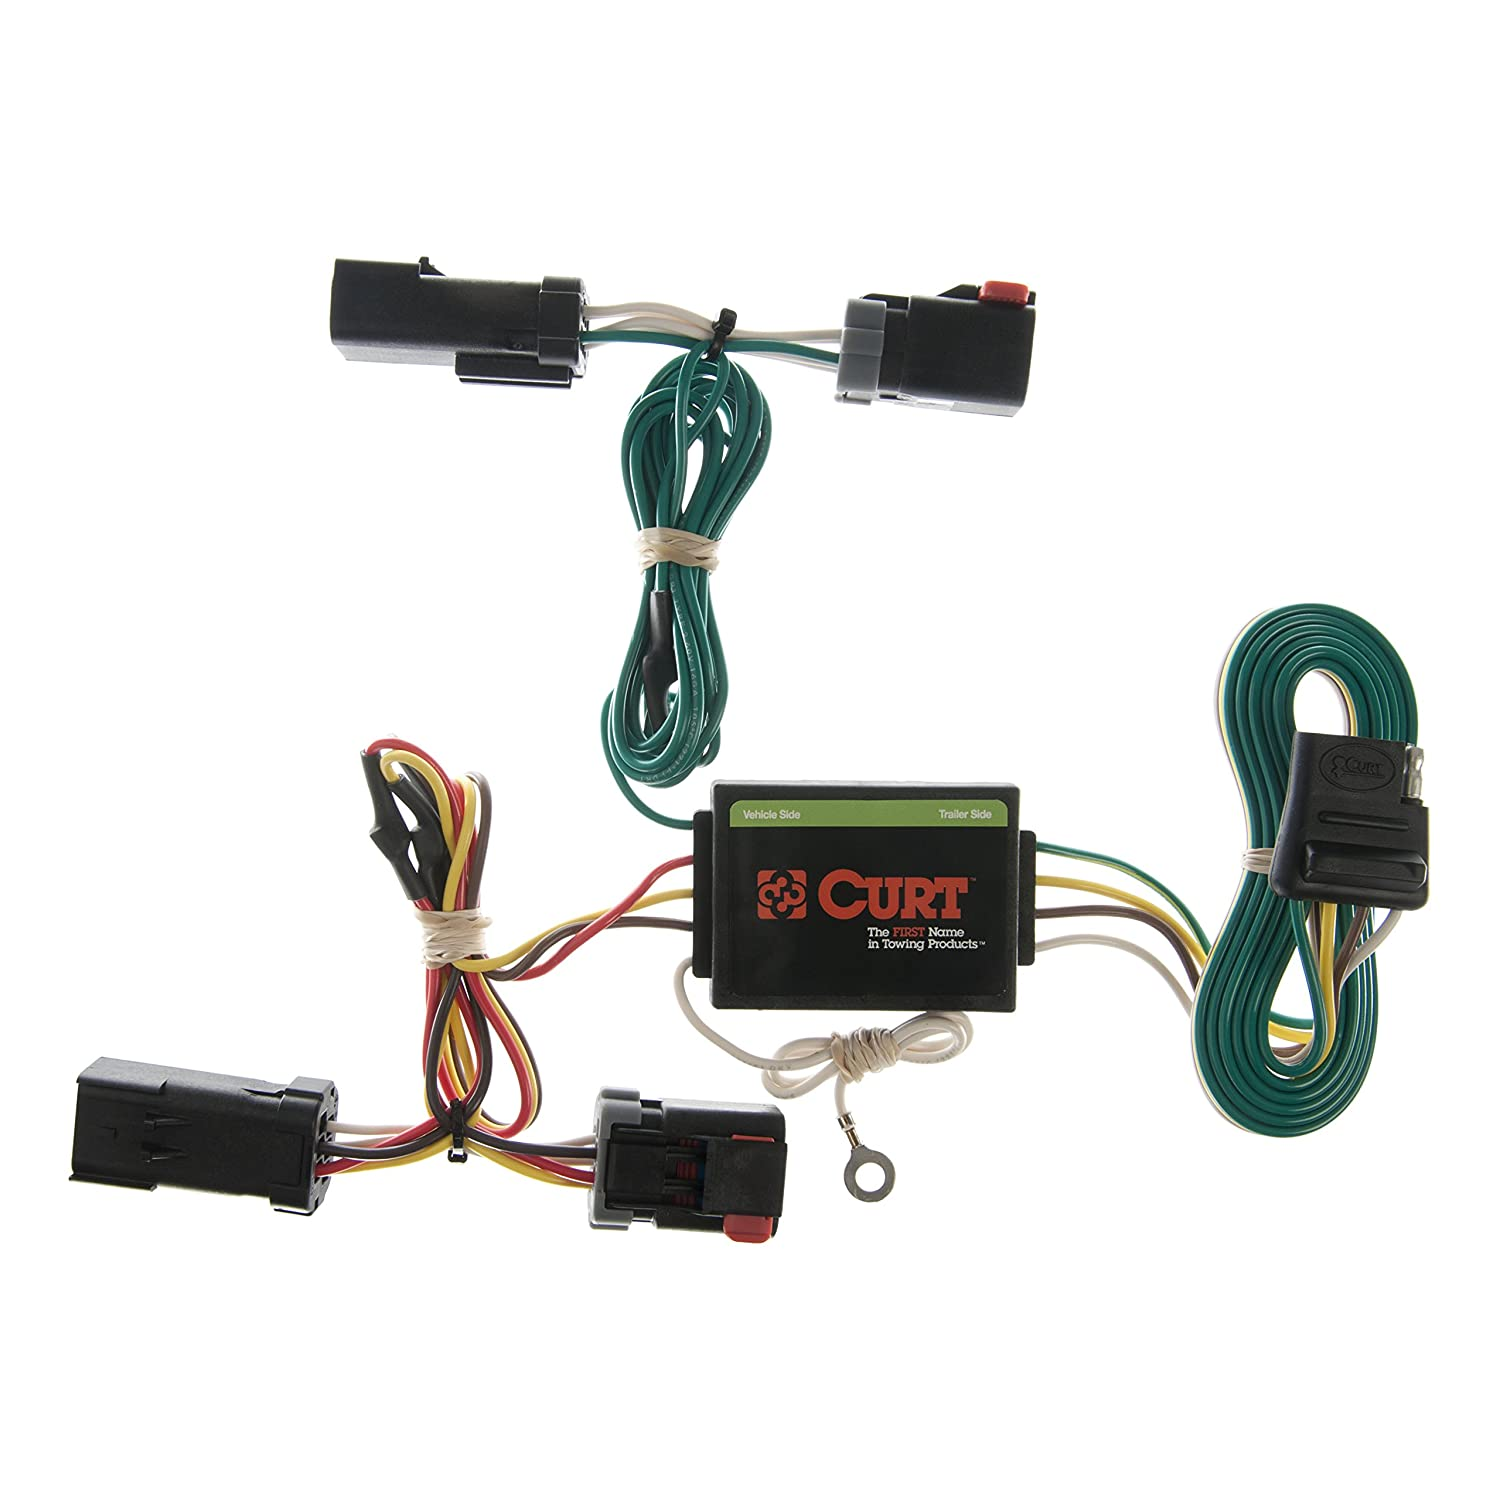 CURT 55382 Vehicle-Side Custom 4-Pin Trailer Wiring Harness for Select on nissan trailer harness, dodge ram trailer harness, gmc trailer harness, boat trailer harness, car trailer harness, dodge journey trailer harness, gm trailer harness, harley-davidson trailer harness, volvo trailer harness, peterbilt trailer harness, honda trailer harness,